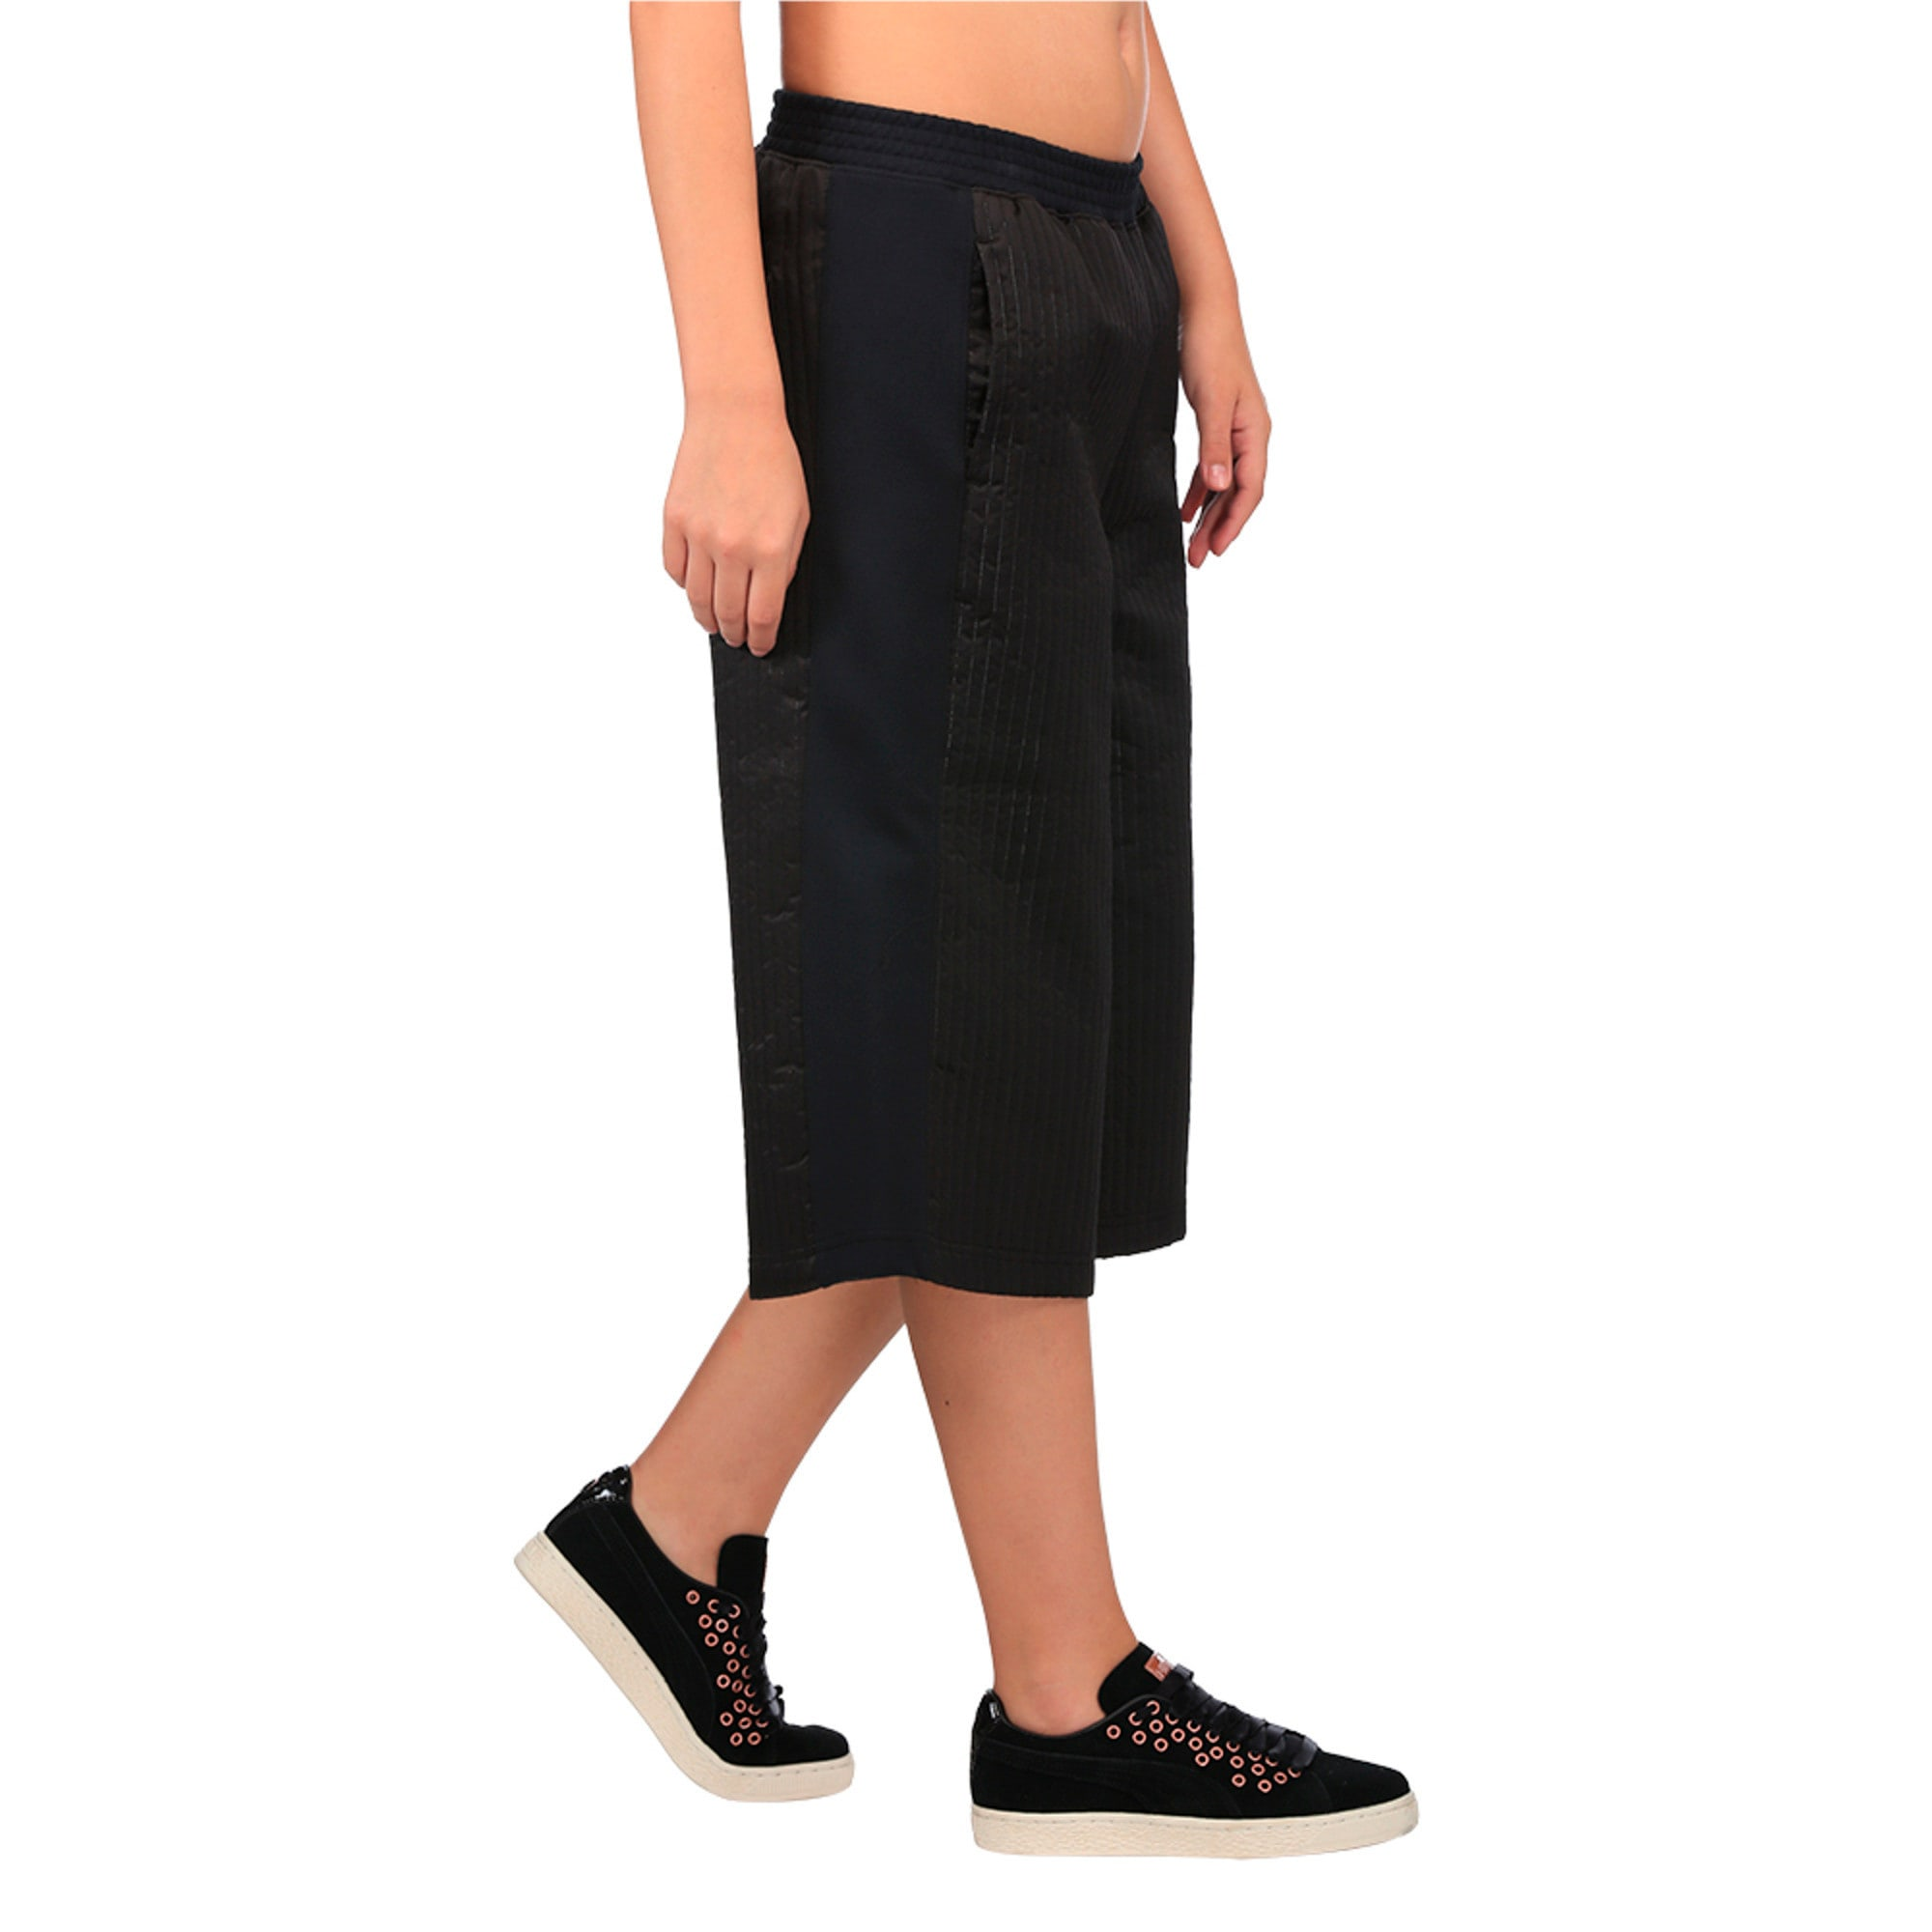 Thumbnail 3 of Evolution Women's Quilted Culottes, Puma Black, medium-IND